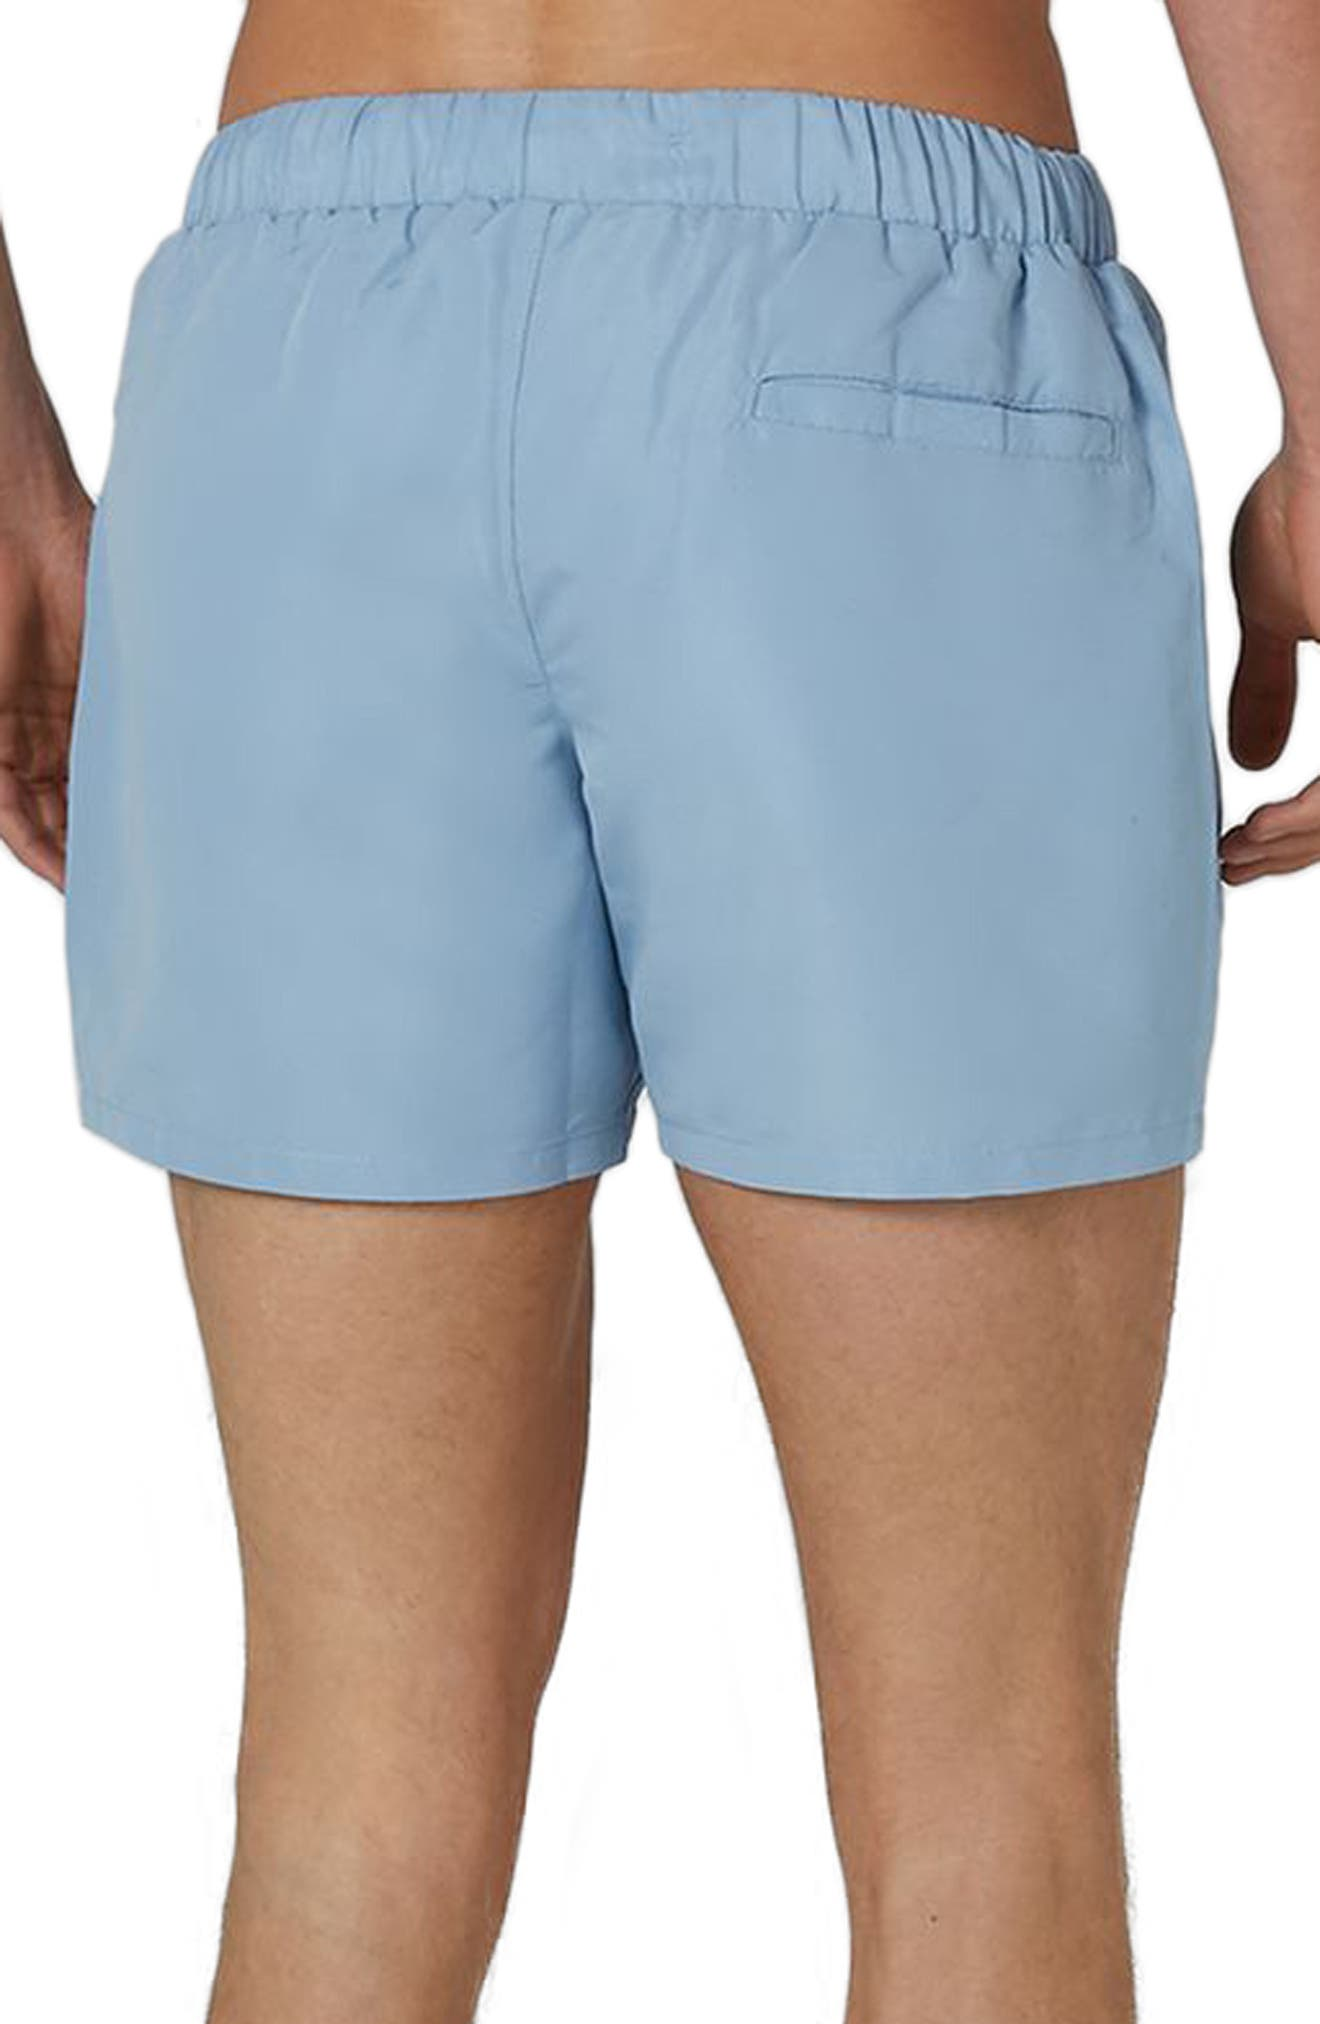 Neptune Swim Trunks,                             Alternate thumbnail 2, color,                             Mid Blue